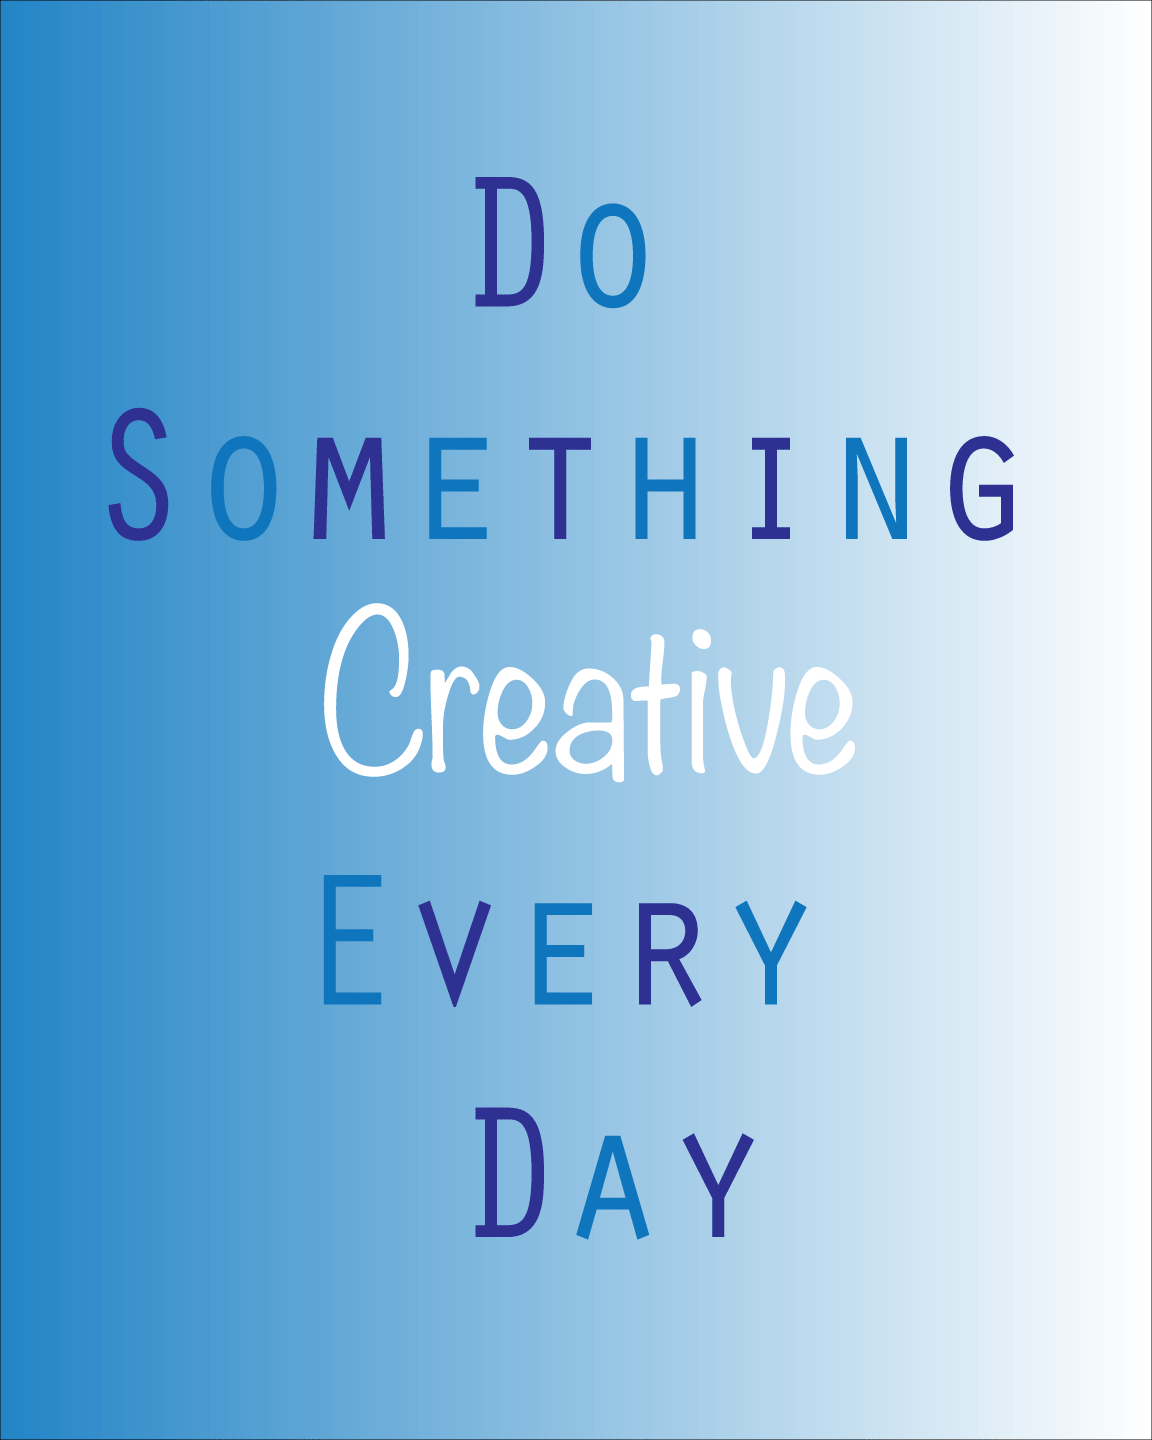 Do-something-creative-every-day